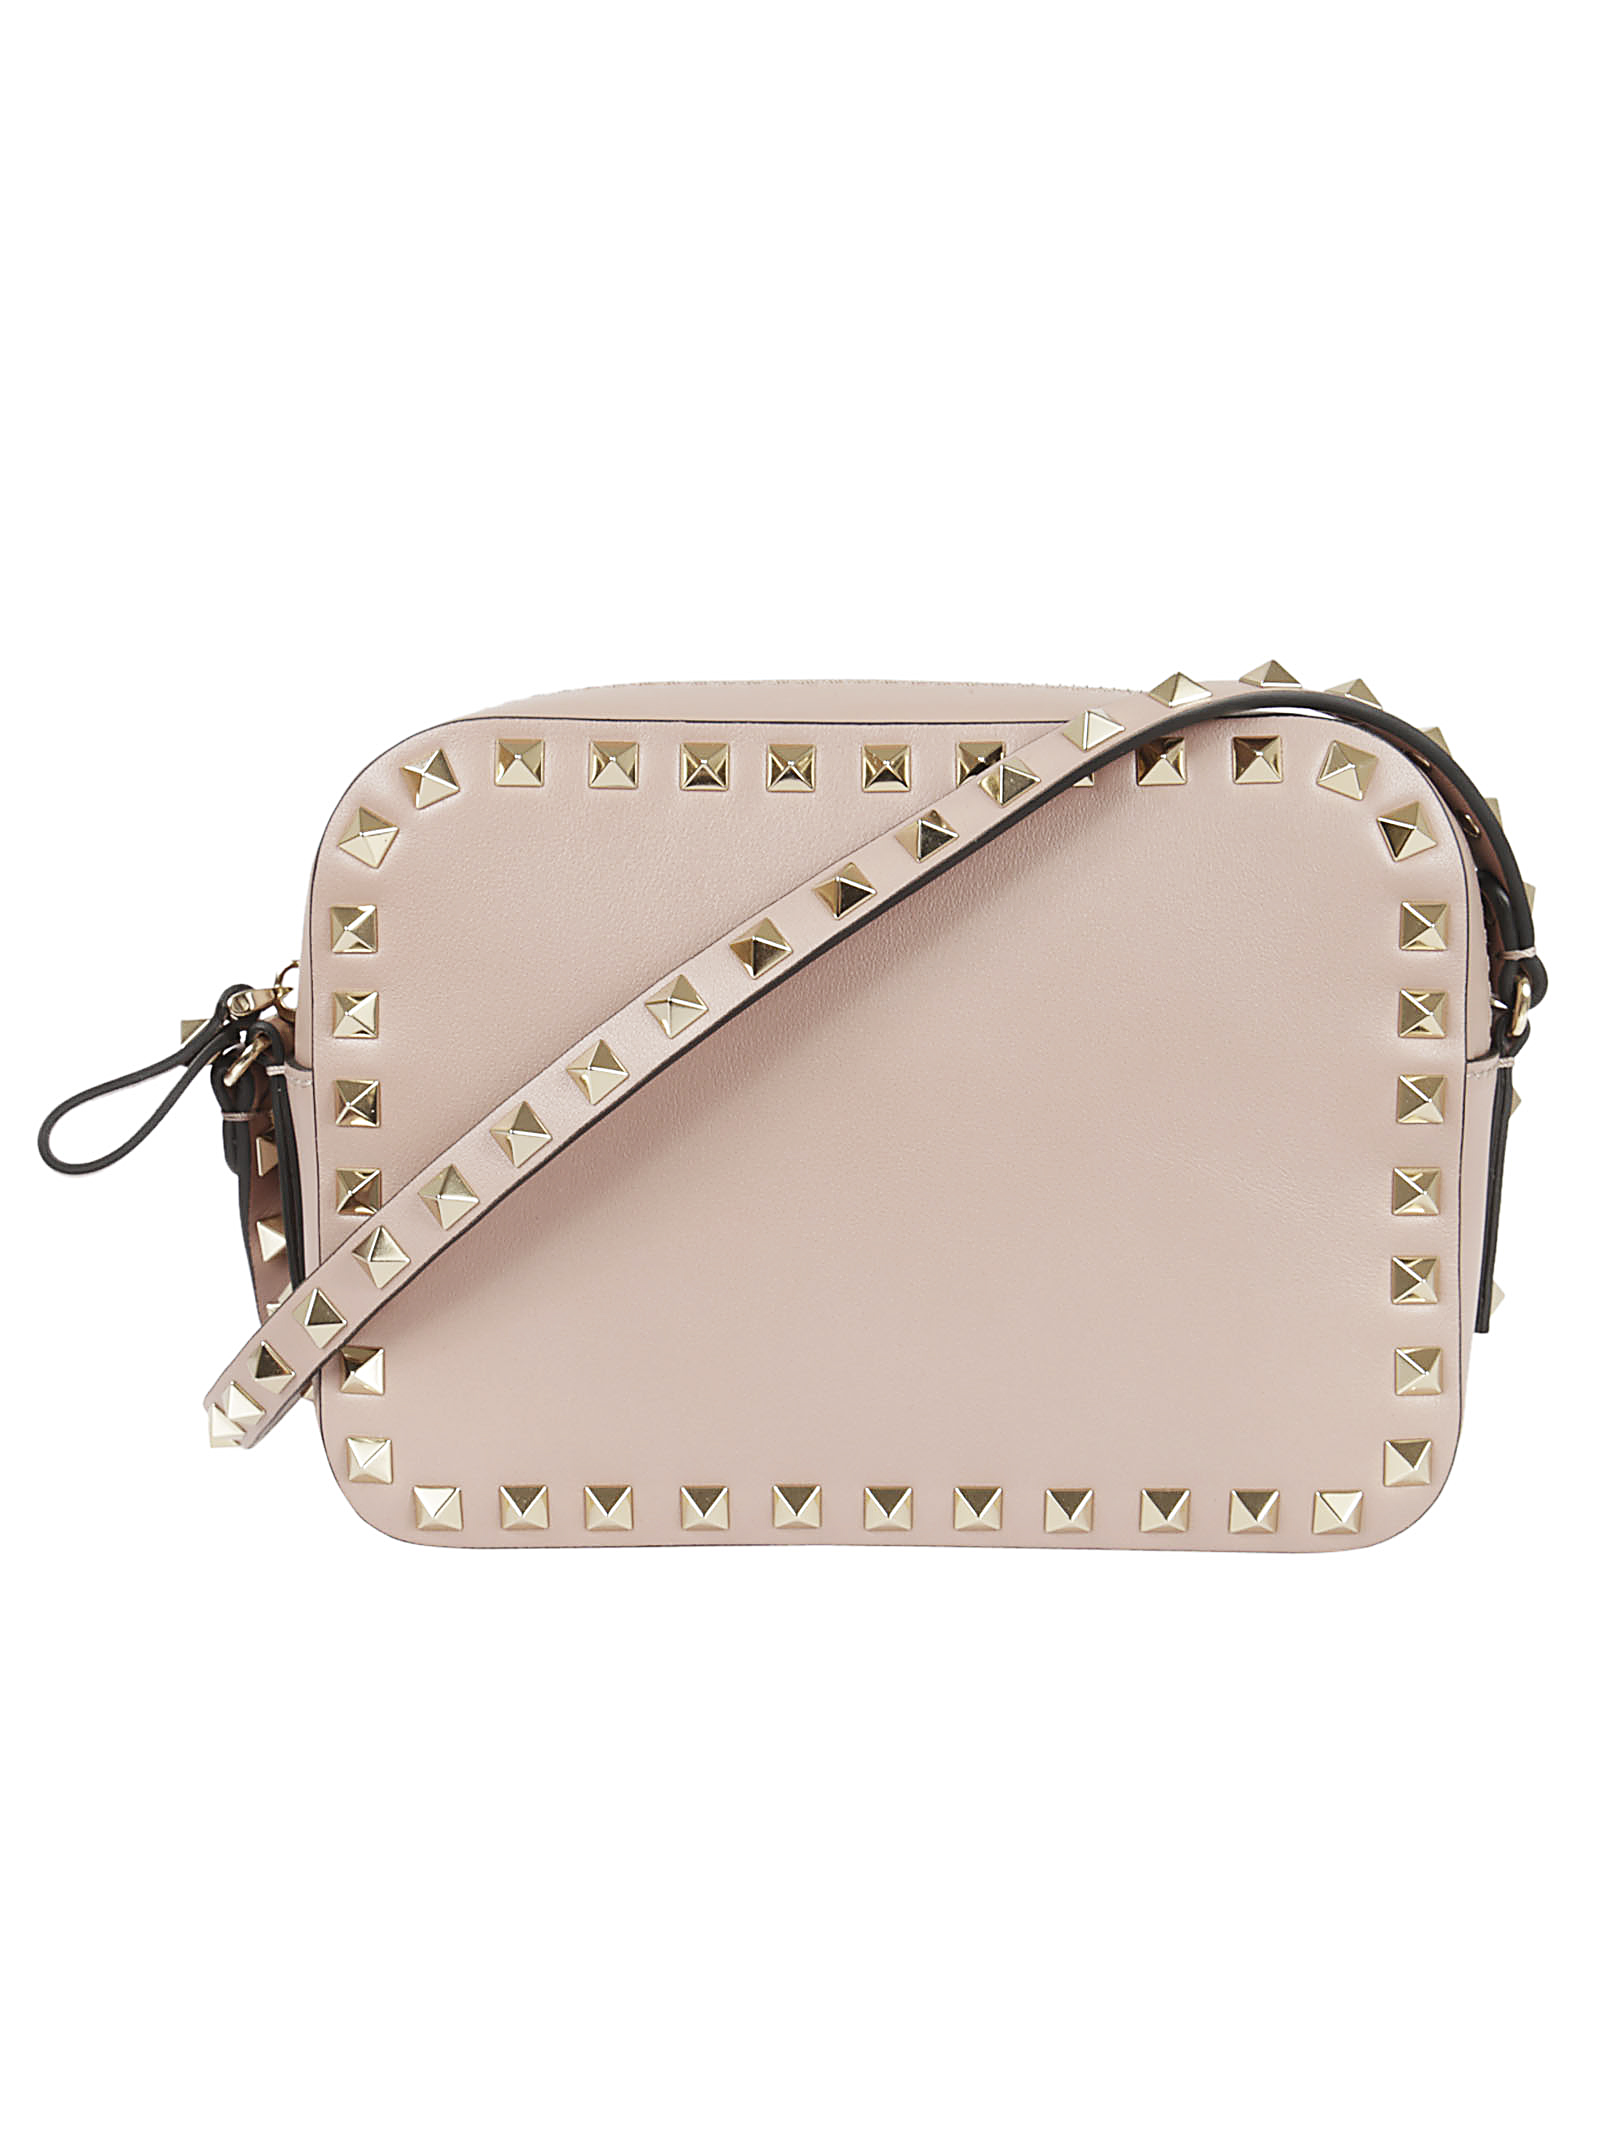 Valentino Garavani Rockstud cross-body bag in calfskin